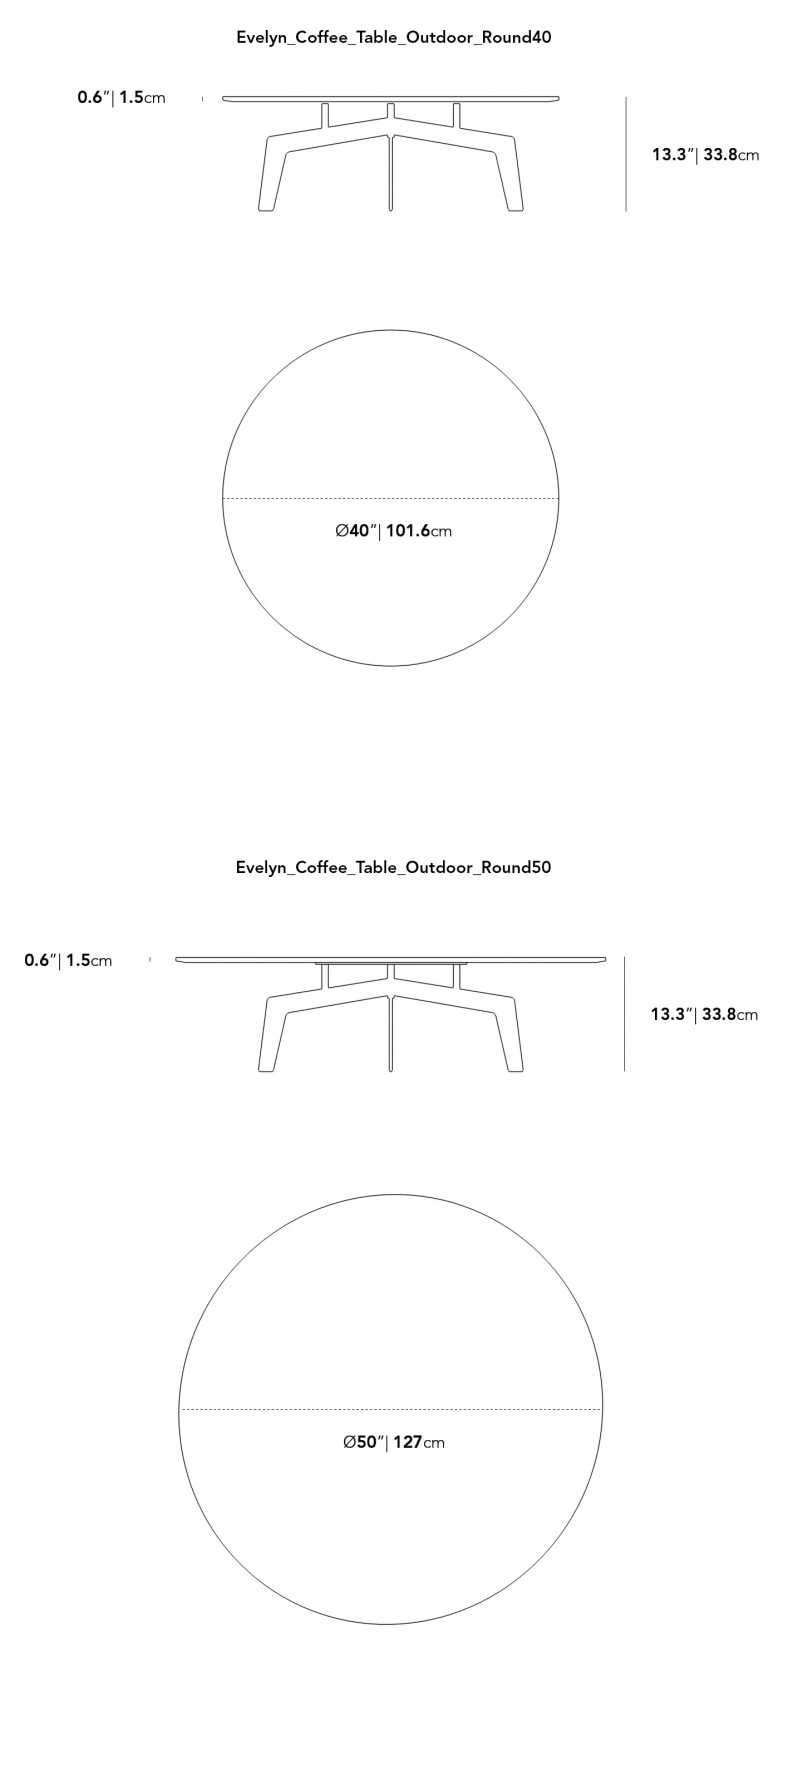 Dimensions for Evelyn Outdoor Coffee Table - Round